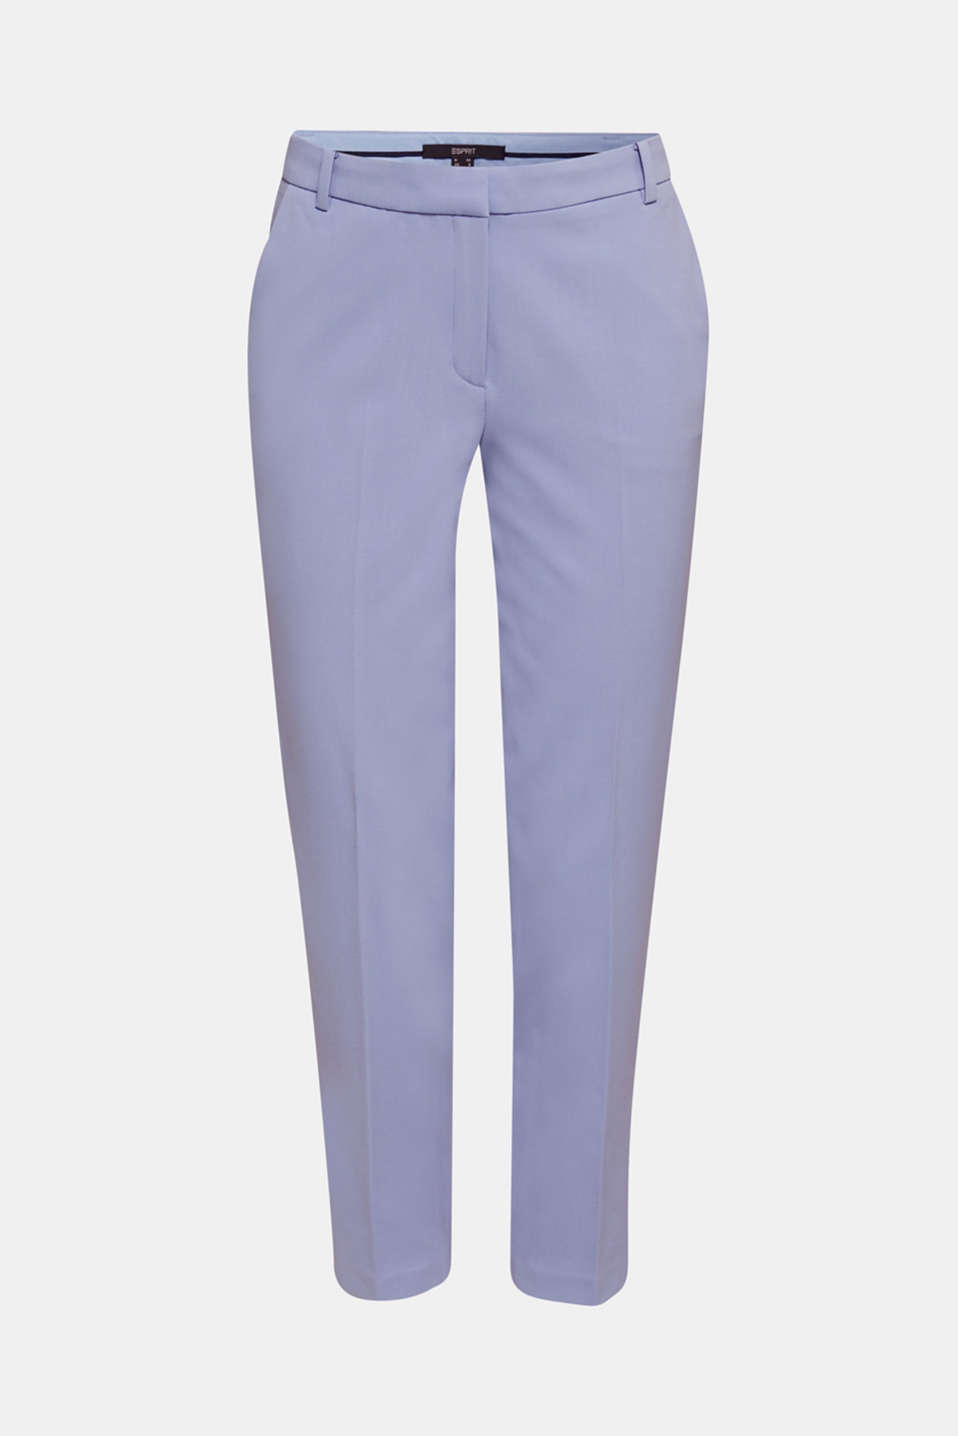 COLORED TWILL mix + match stretch trousers, BLUE LAVENDER, detail image number 5